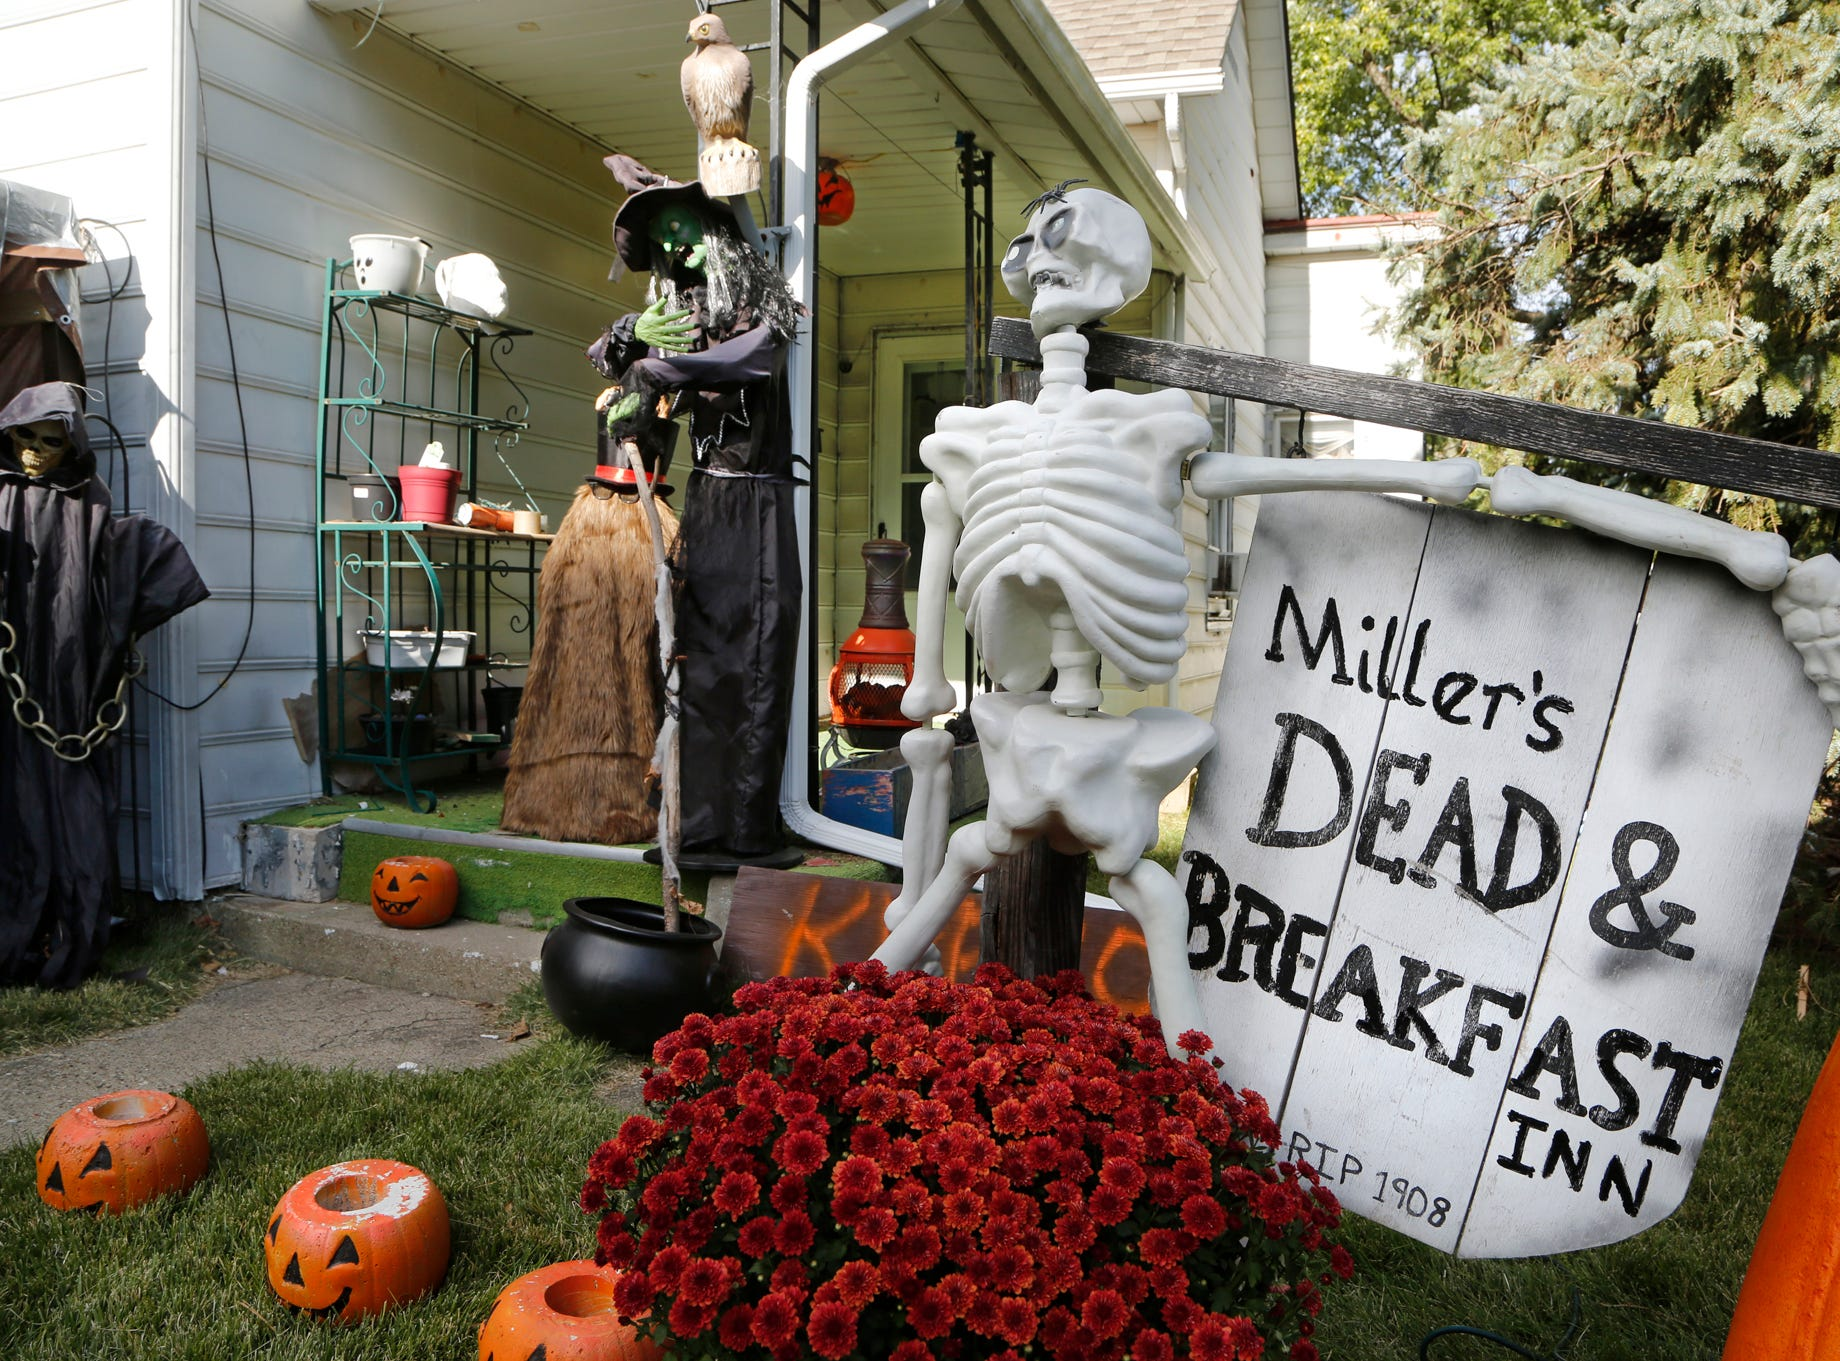 Halloween decorations cover the front yard of Ken and Connie Miller's home Tuesday, October 16, 2018, in the 2600 block of Main Street in Lafayette. The couple have been decorating their front yard for Halloween for about the past 15 years.